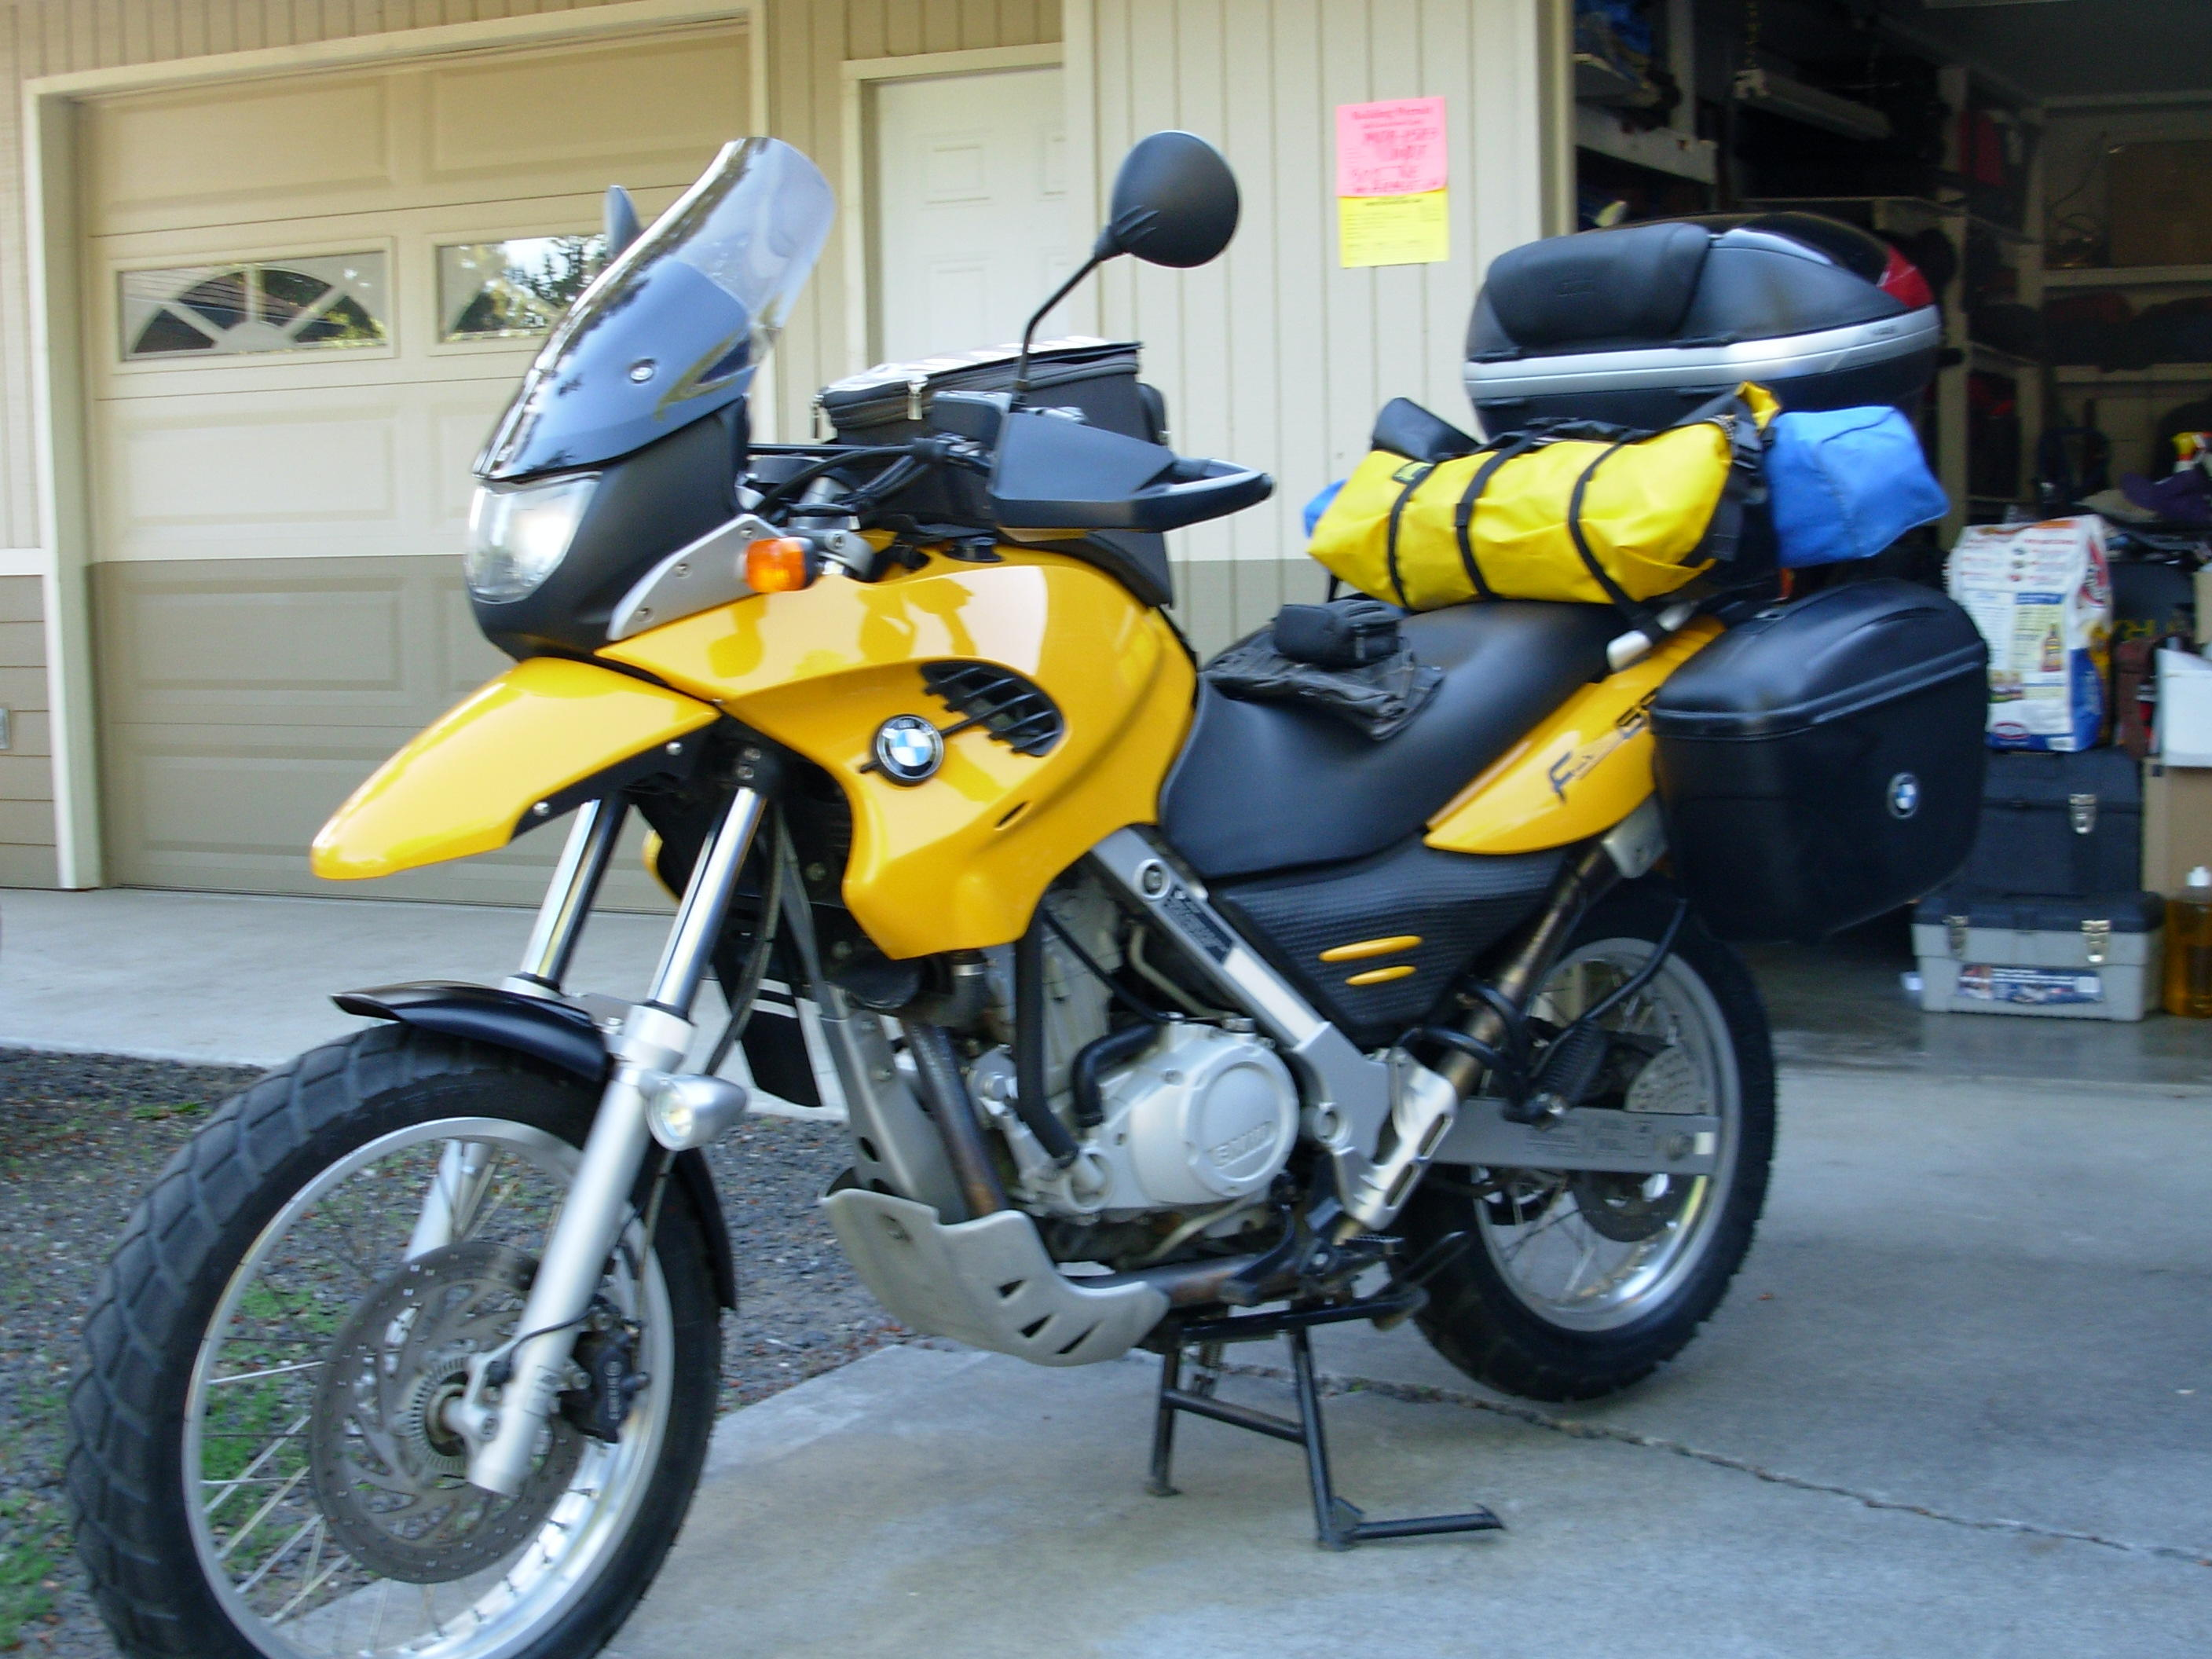 BMW F650GS 2001 images #150783